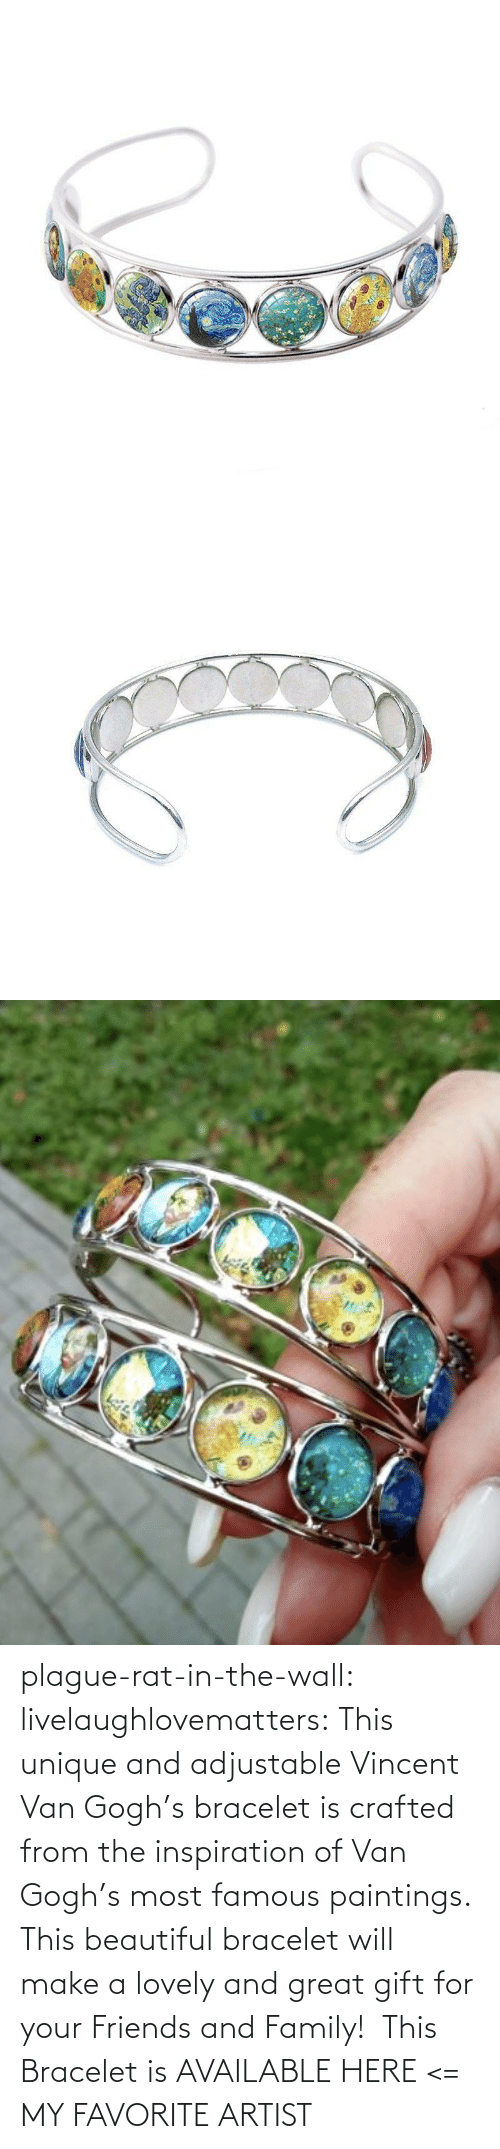 family: plague-rat-in-the-wall:  livelaughlovematters: This unique and adjustable Vincent Van Gogh's bracelet is crafted from the inspiration of Van Gogh's most famous paintings. This beautiful bracelet will make a lovely and great gift for your Friends and Family!  This Bracelet is AVAILABLE HERE <=  MY FAVORITE ARTIST